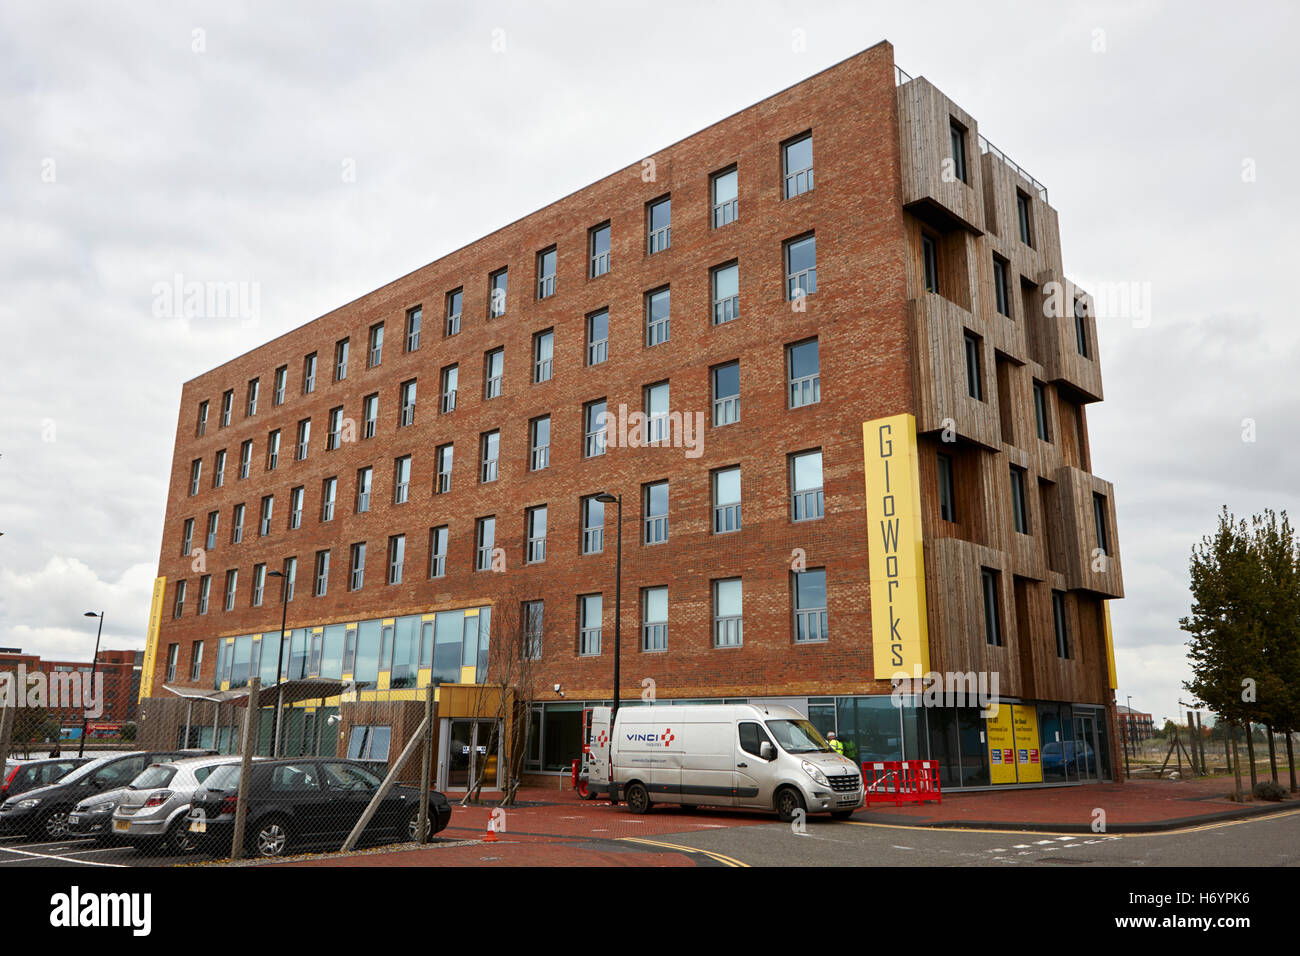 gloworks creative industries centre hub porth teigr Cardiff bay Wales United Kingdom - Stock Image